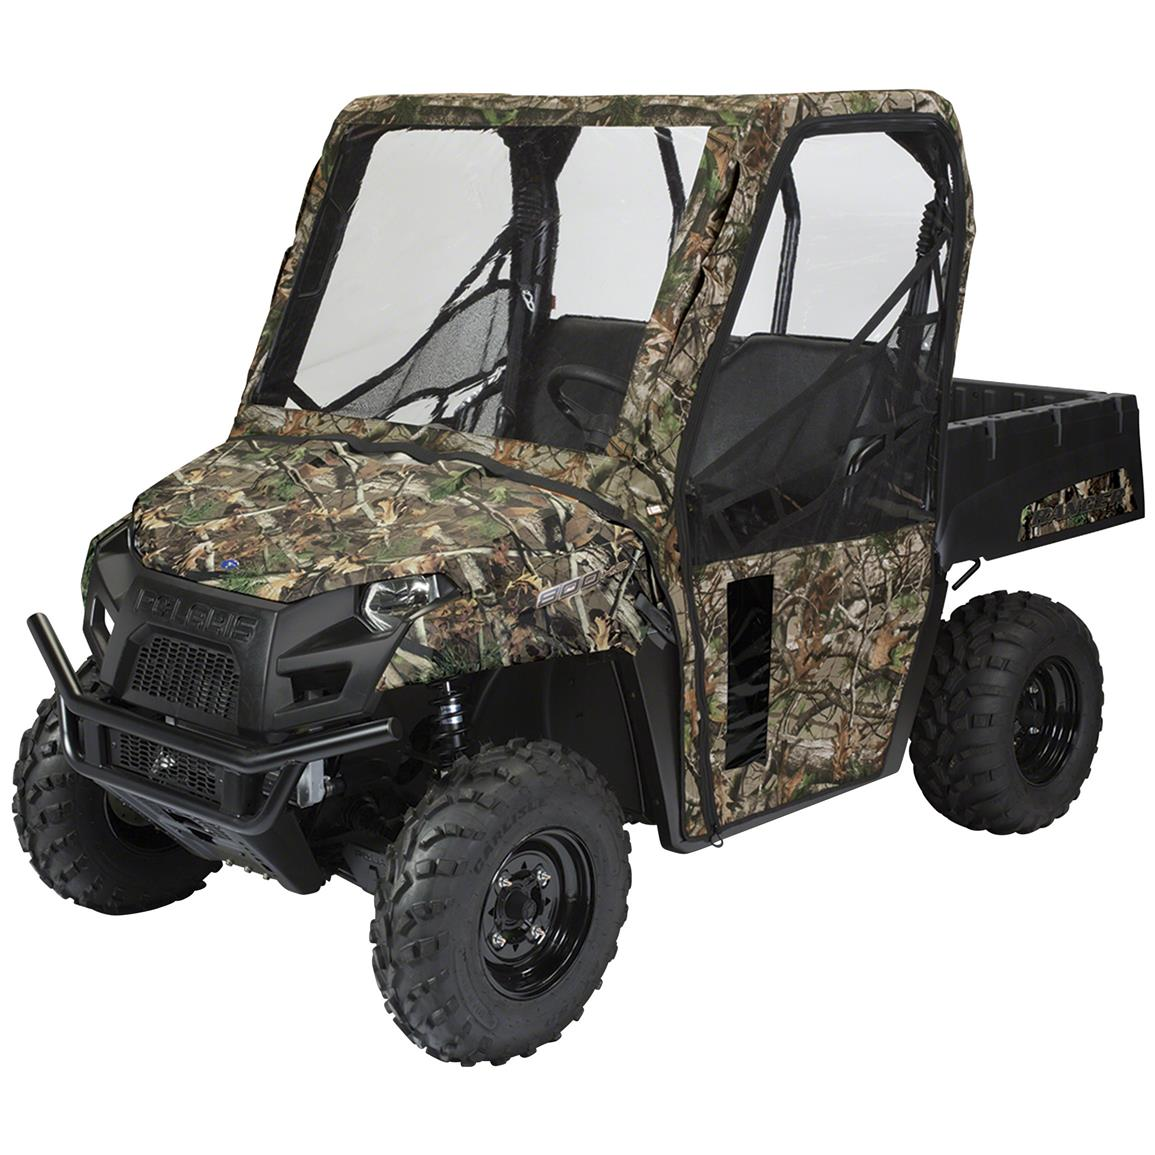 Quad Gear UTV Cab Enclosure, Yamaha Rhino, Next Camo